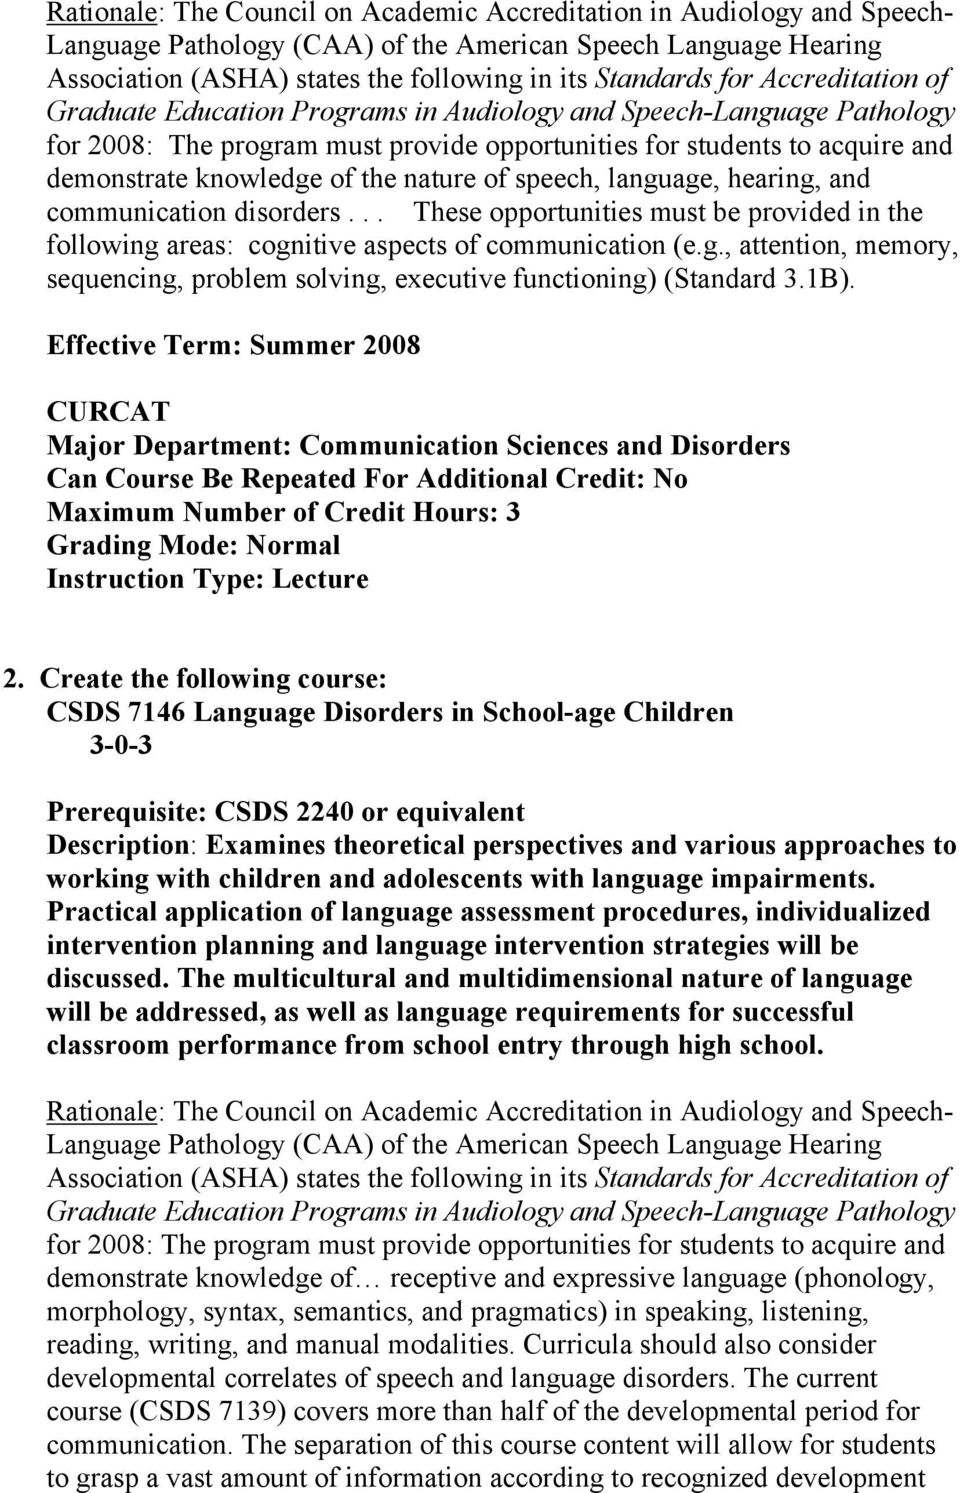 nature of speech, language, hearing, and communication disorders... These opportunities must be provided in the following areas: cognitive aspects of communication (e.g., attention, memory, sequencing, problem solving, executive functioning) (Standard 3.